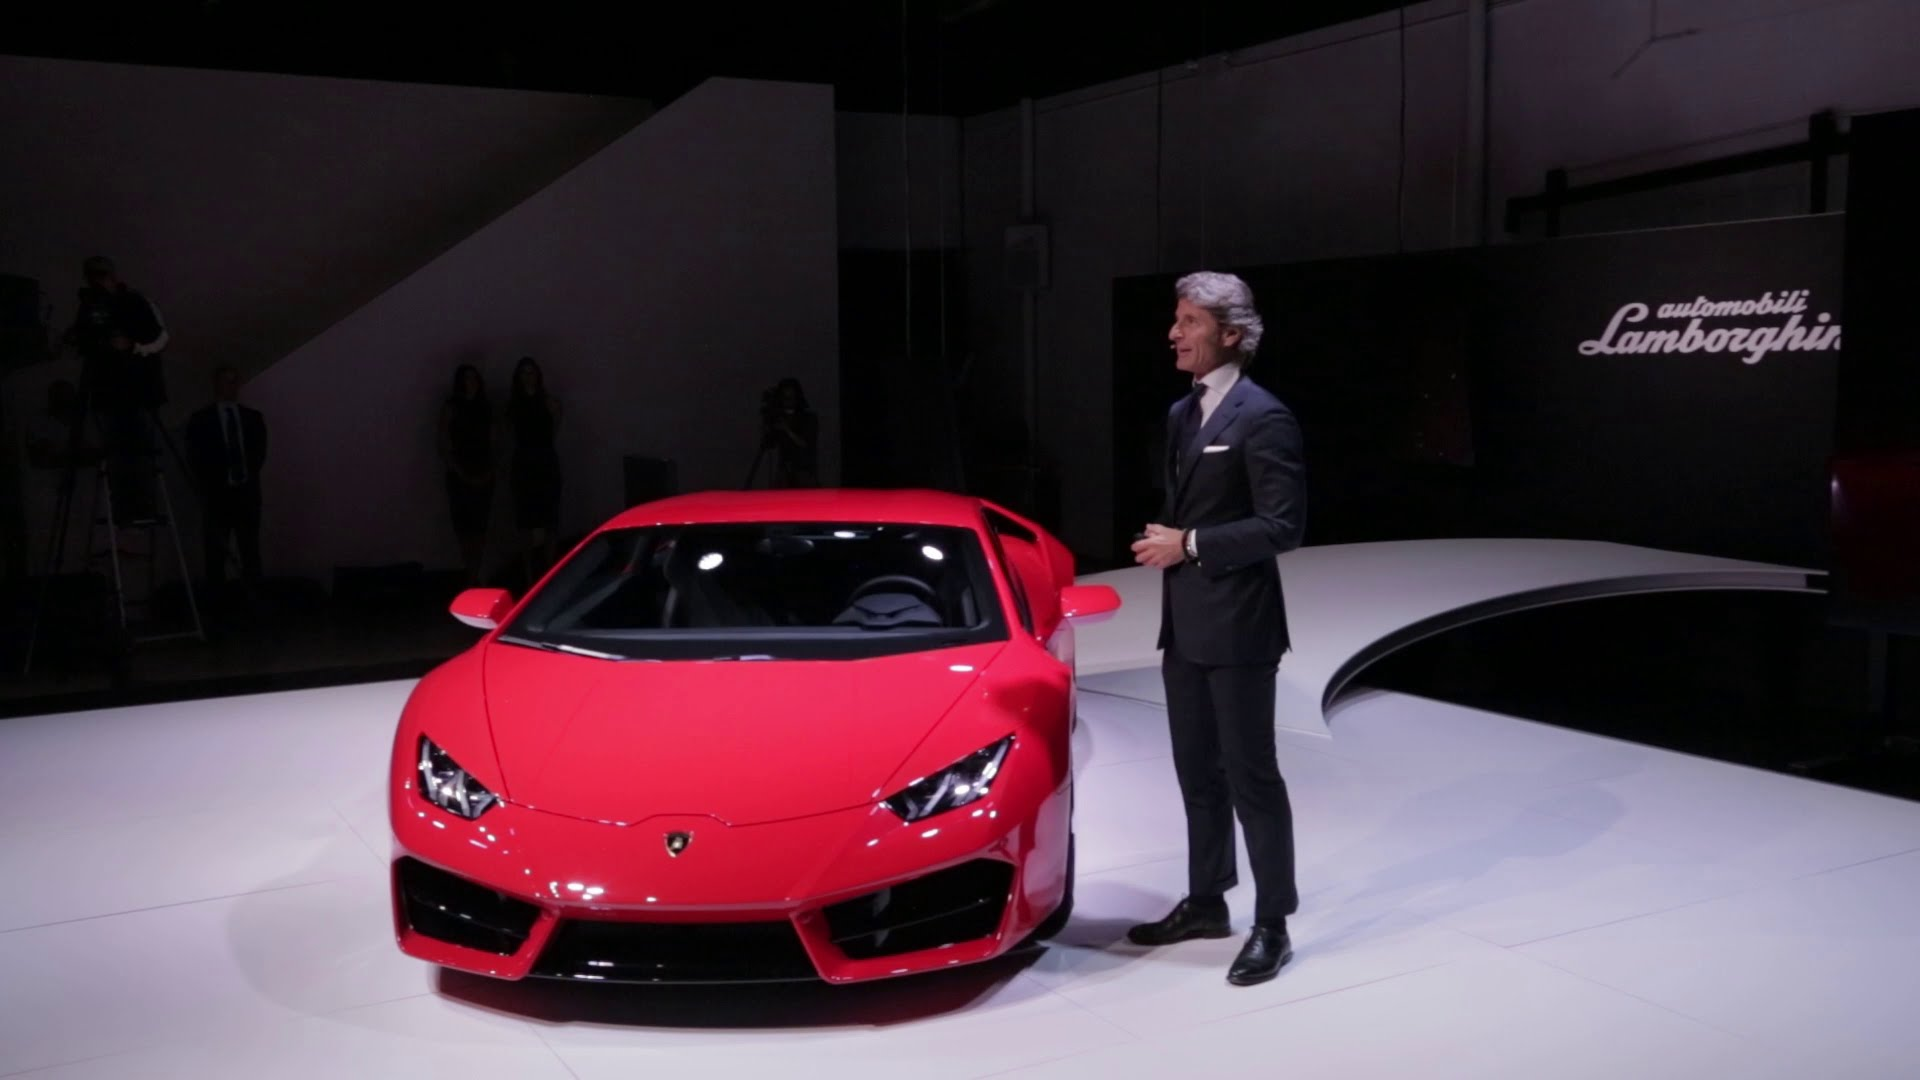 unveiling-of-the-new-lambo-huracan-was-a-win-because-it-8217-s-a-freaking-new-lambo Marvelous Lamborghini Huracan Hack asphalt 8 Cars Trend